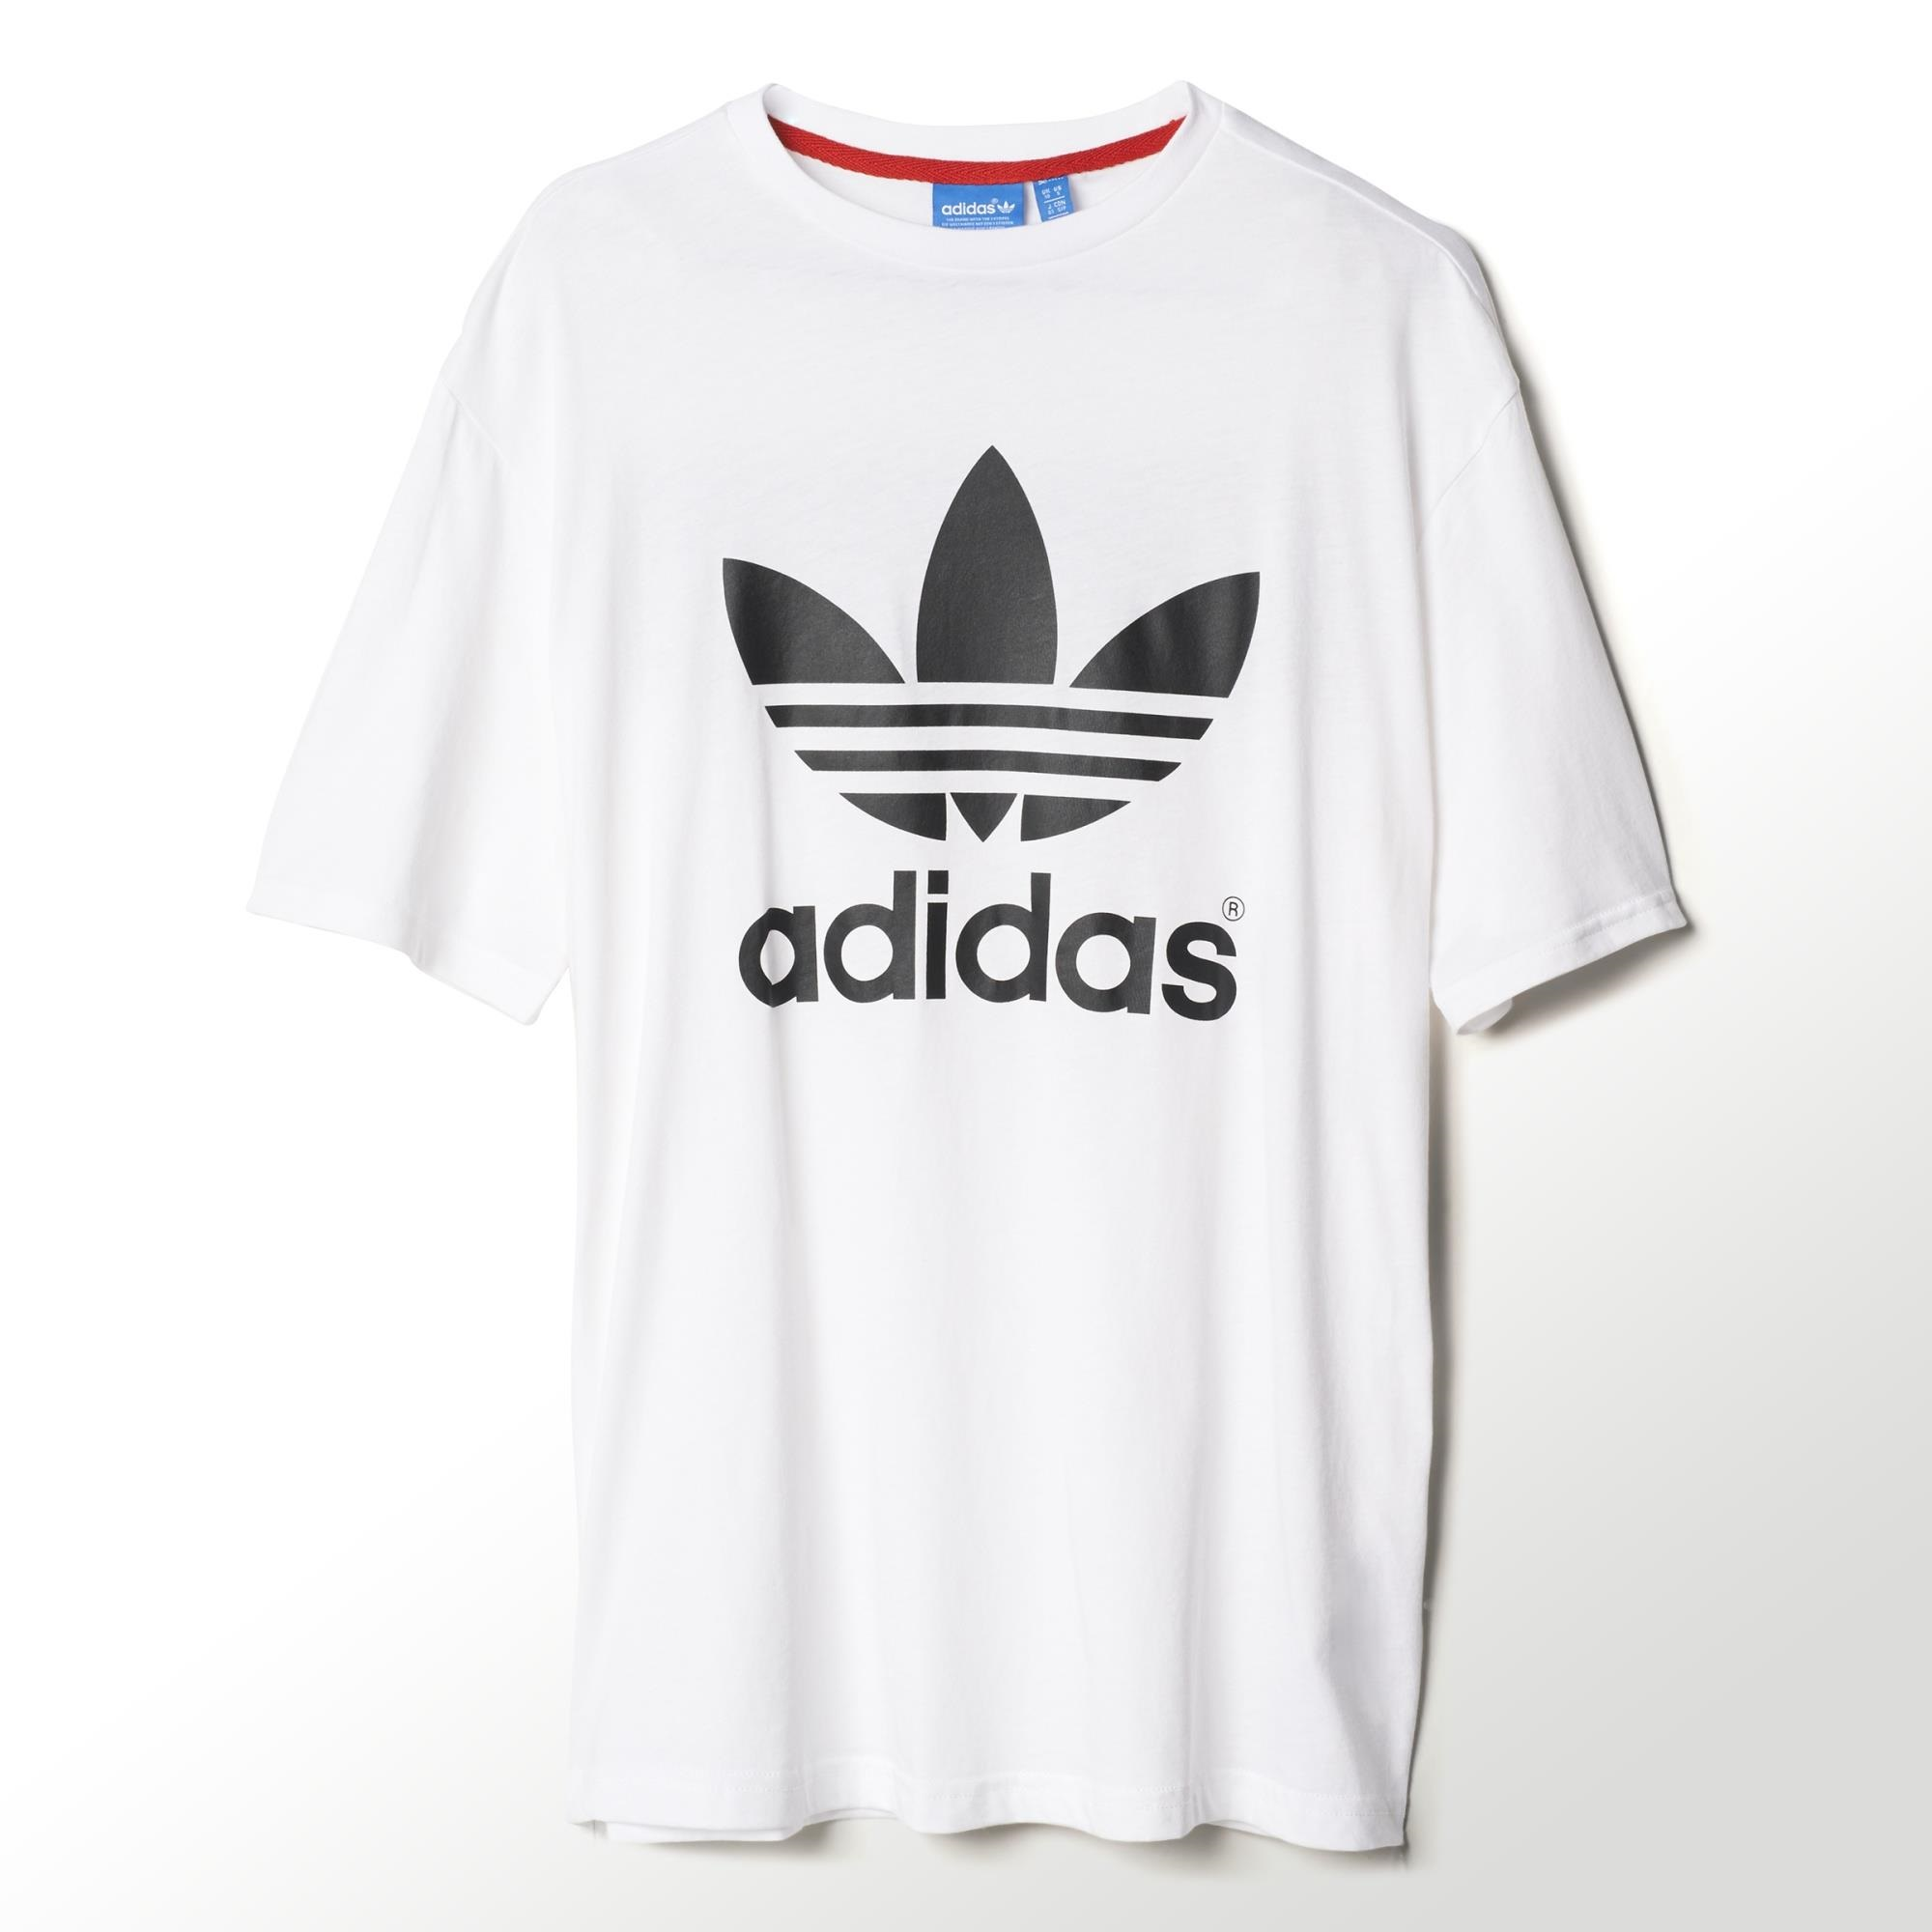 adidas superstar t shirt